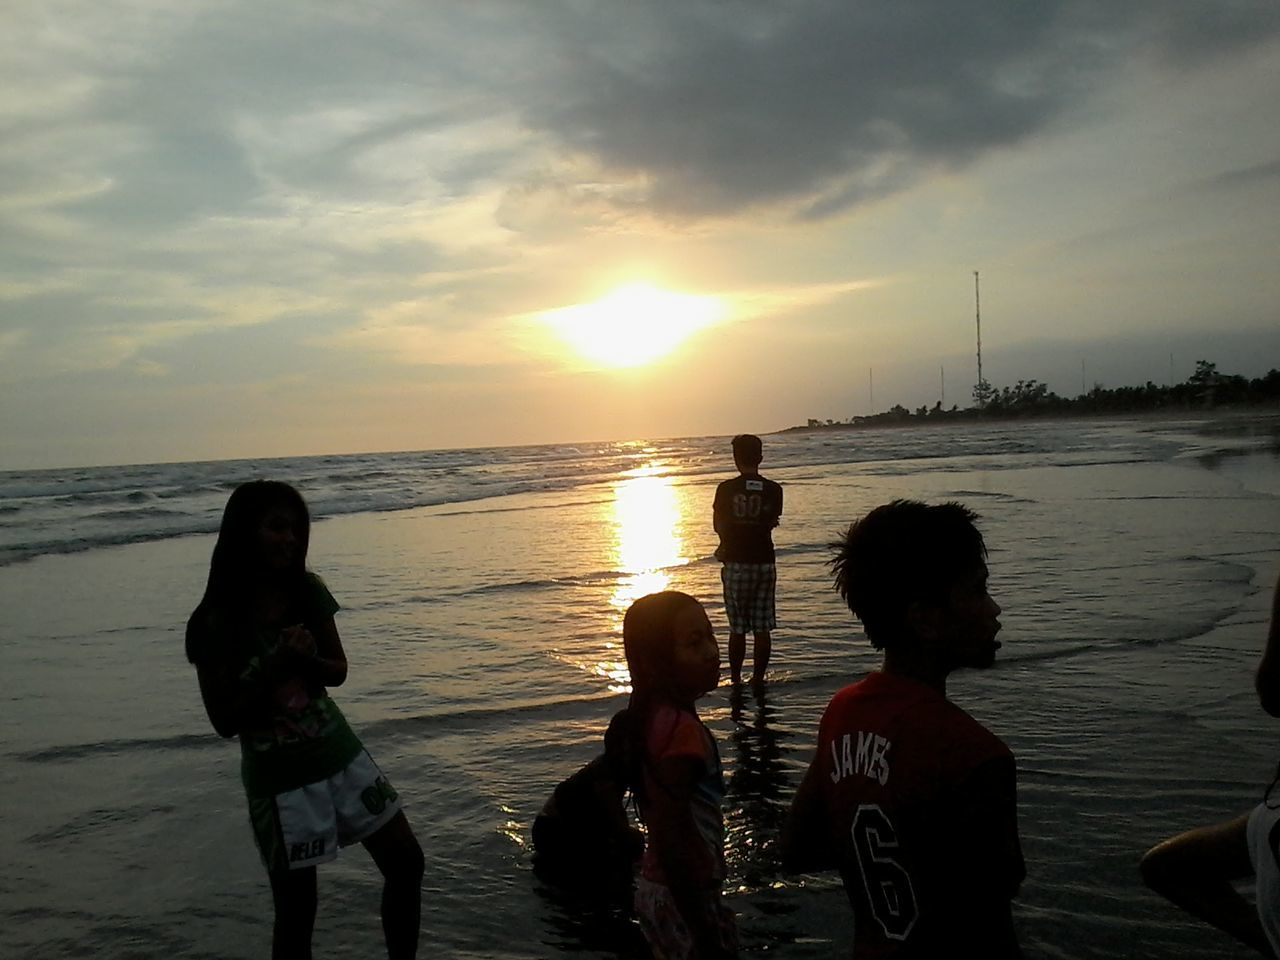 Sunset Sea Beach Water Boys Child Travel Destinations Outdoors People Silhouette Nature Sun Adult Sky Day Play Scenery Twilight